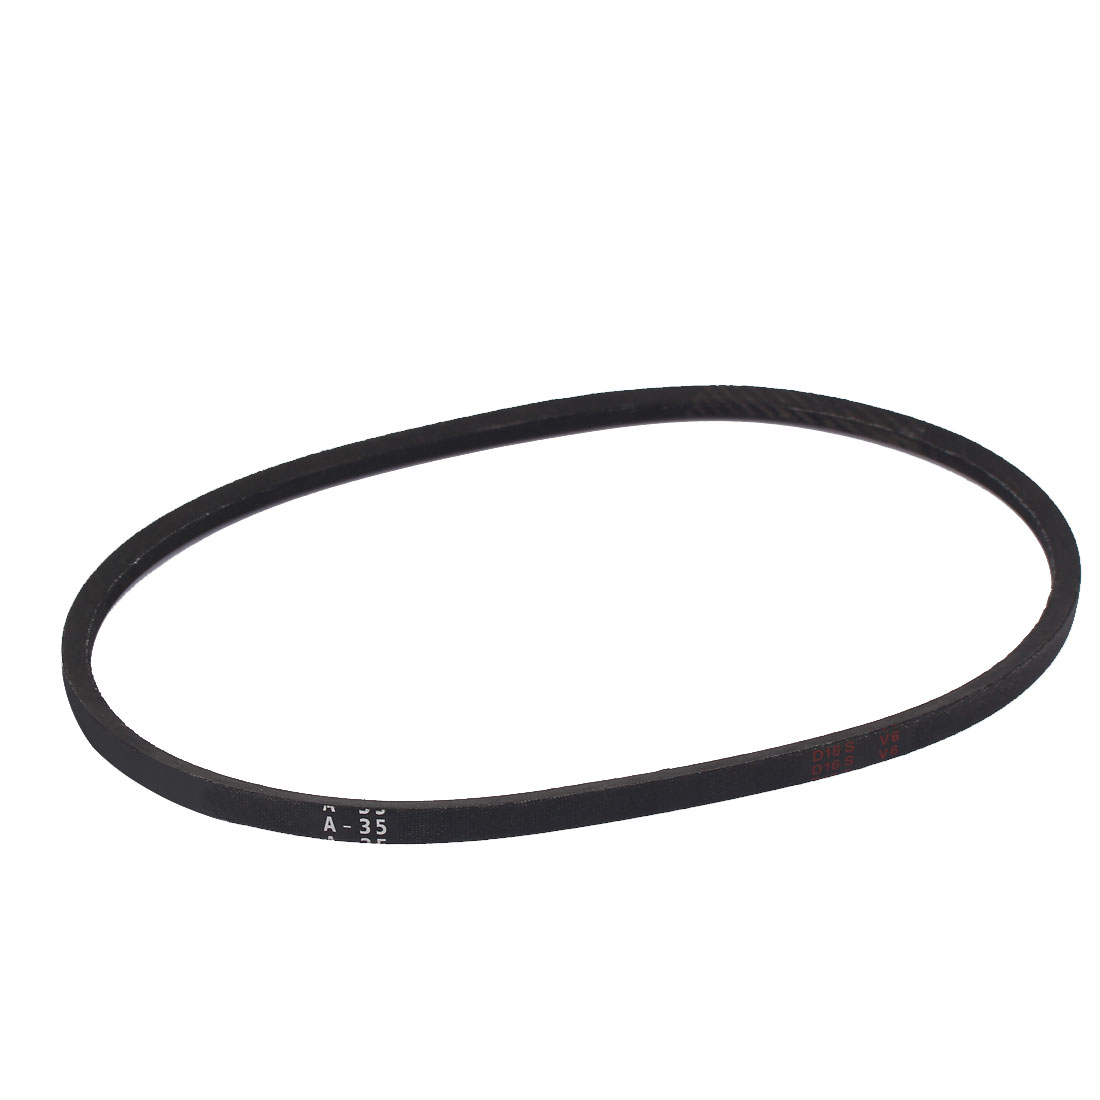 "A35 Yard Machine Lawn Mower Tractor Drive Belt V-Belt 35"" x 1/2"" Black"